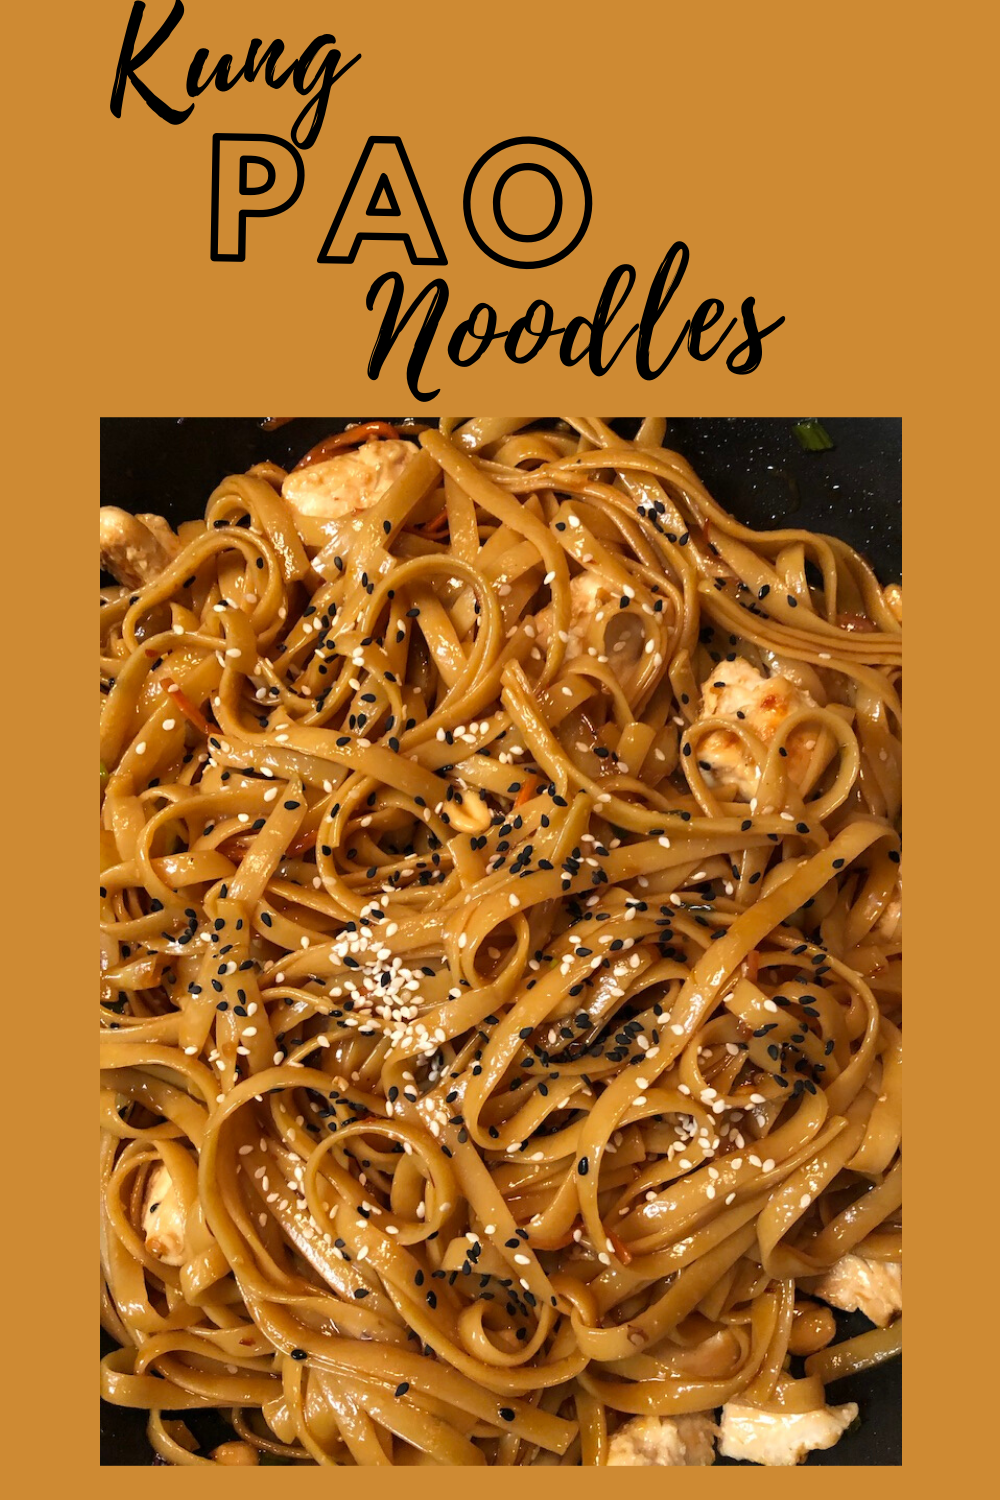 The most time-consuming part of this dish is boiling the noodles! You can make the sauce within five minutes or less. The recipe is flexible to add your own favorite veggies!   #fwmd #kungpaonoodles #kungpaochicken #noodledishes #asiannoodles #